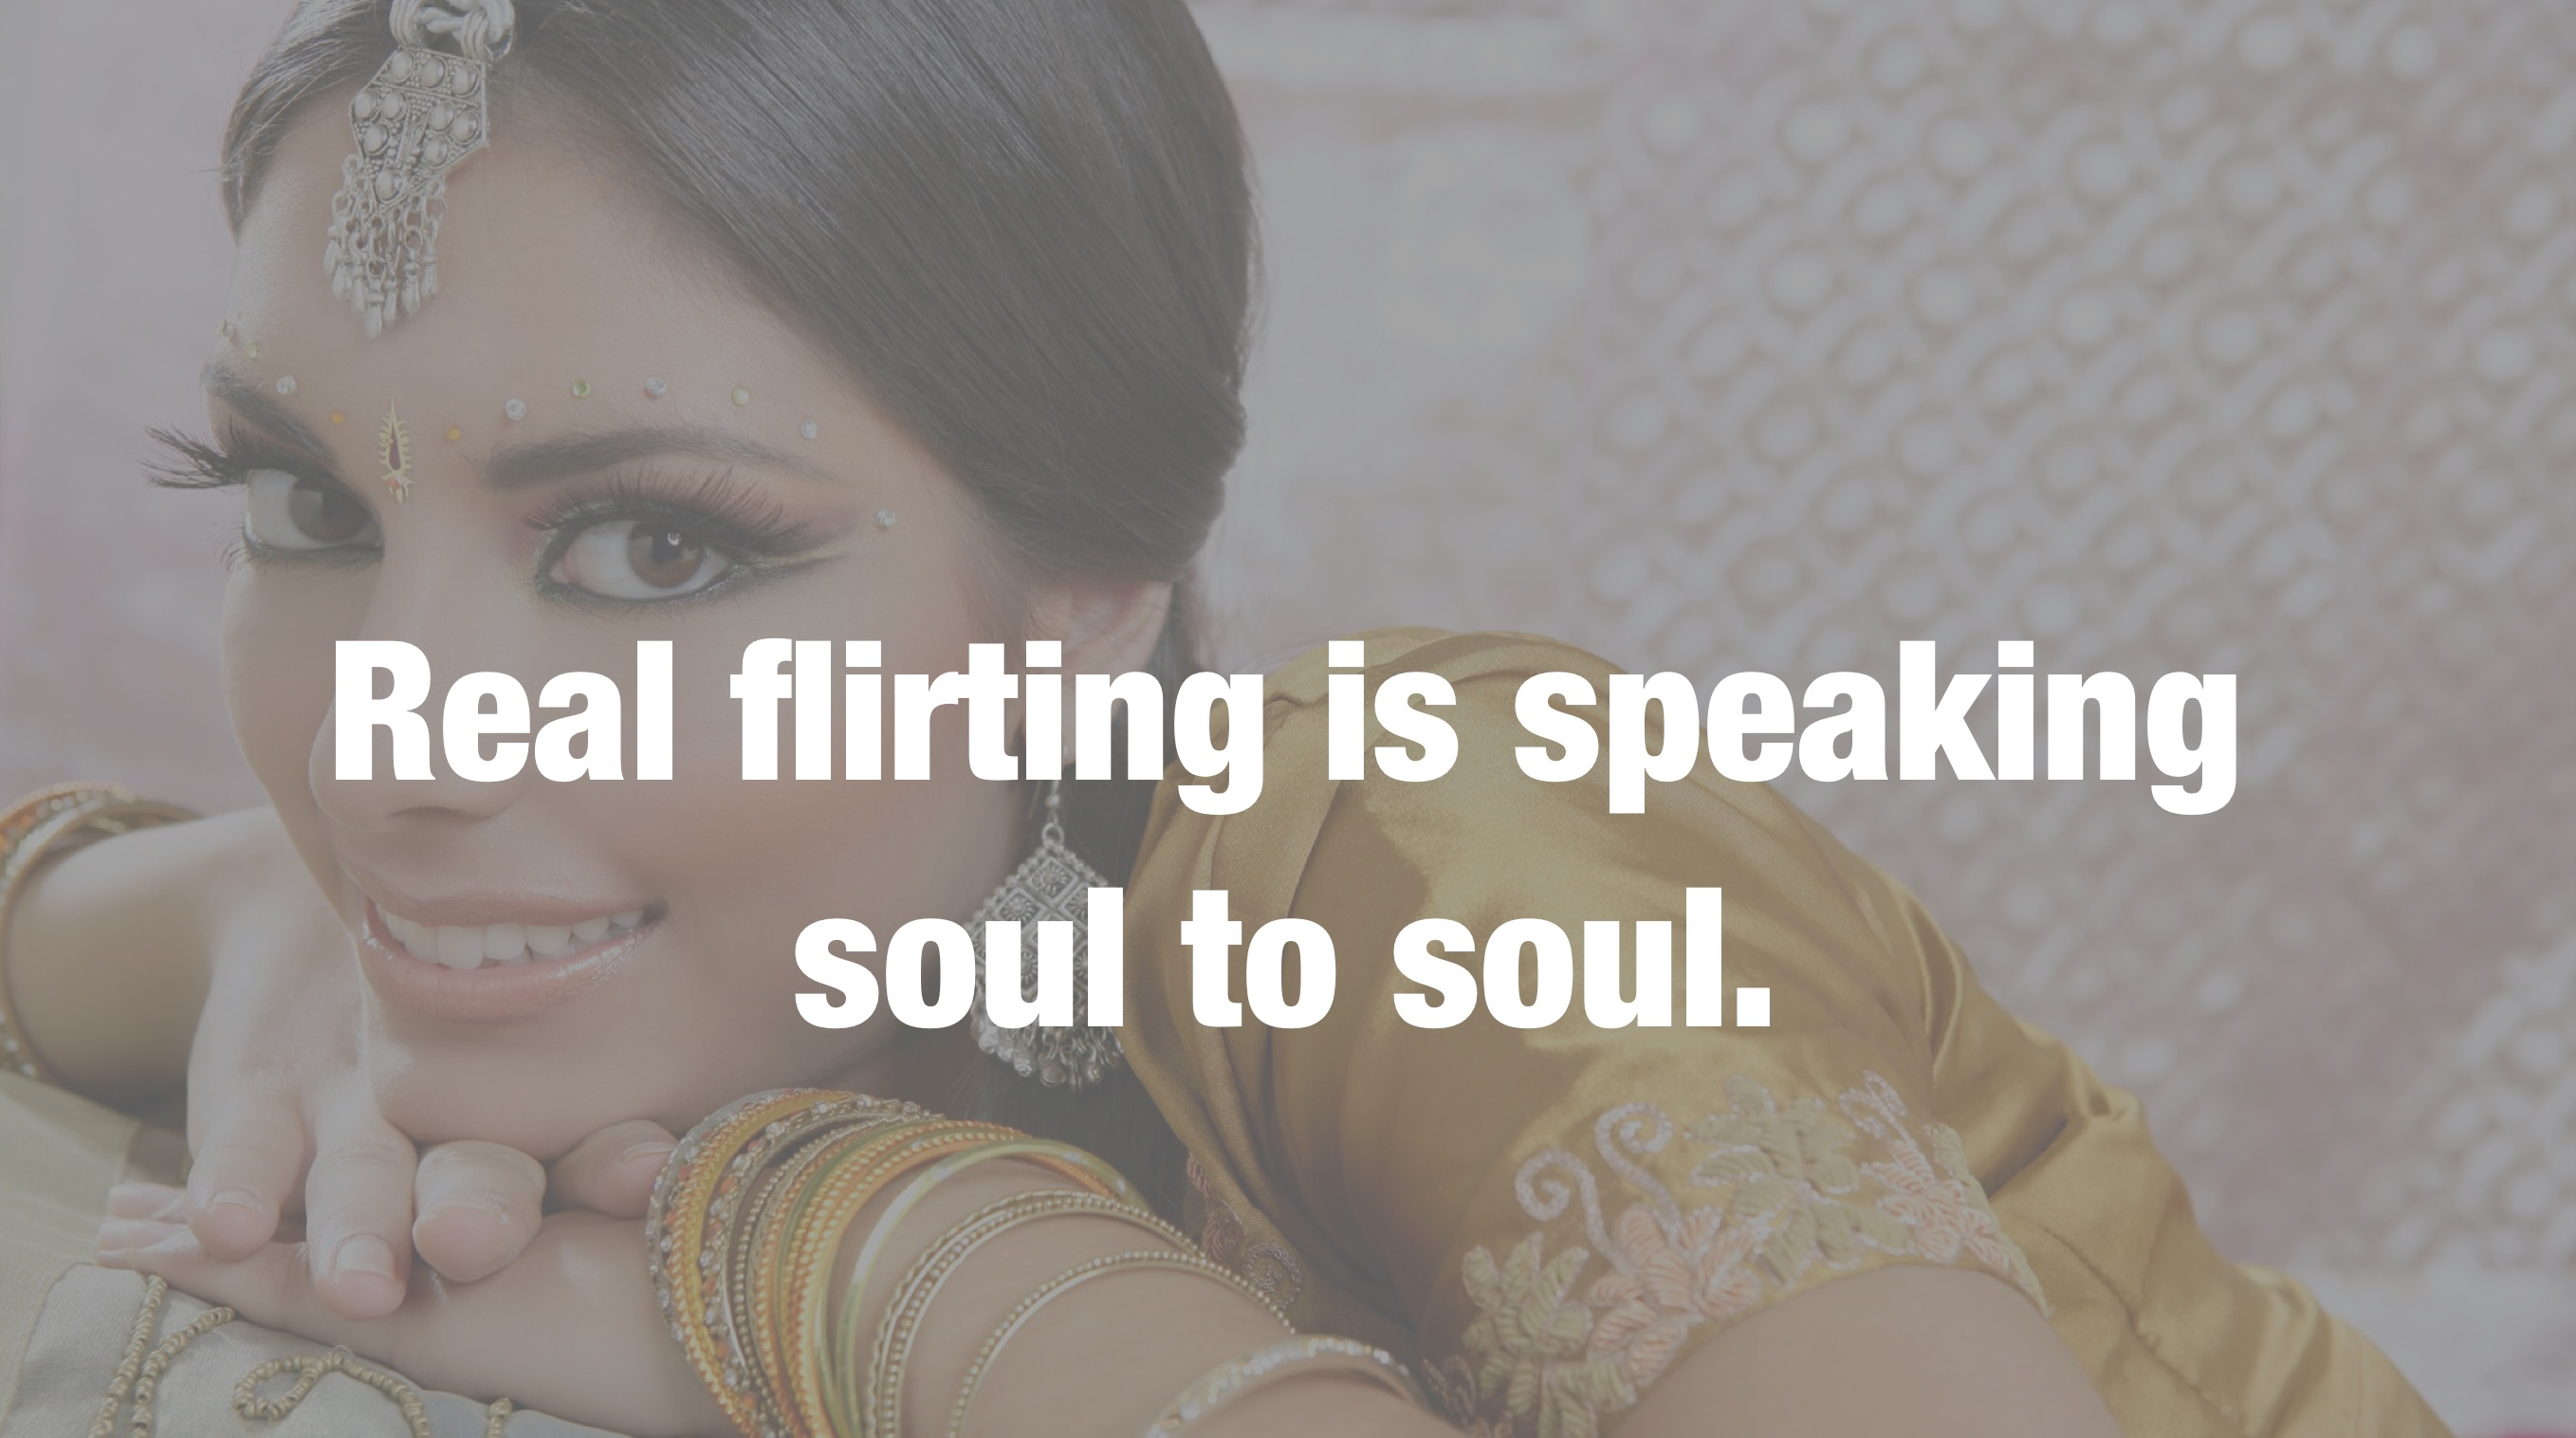 Flirting is good for the soul